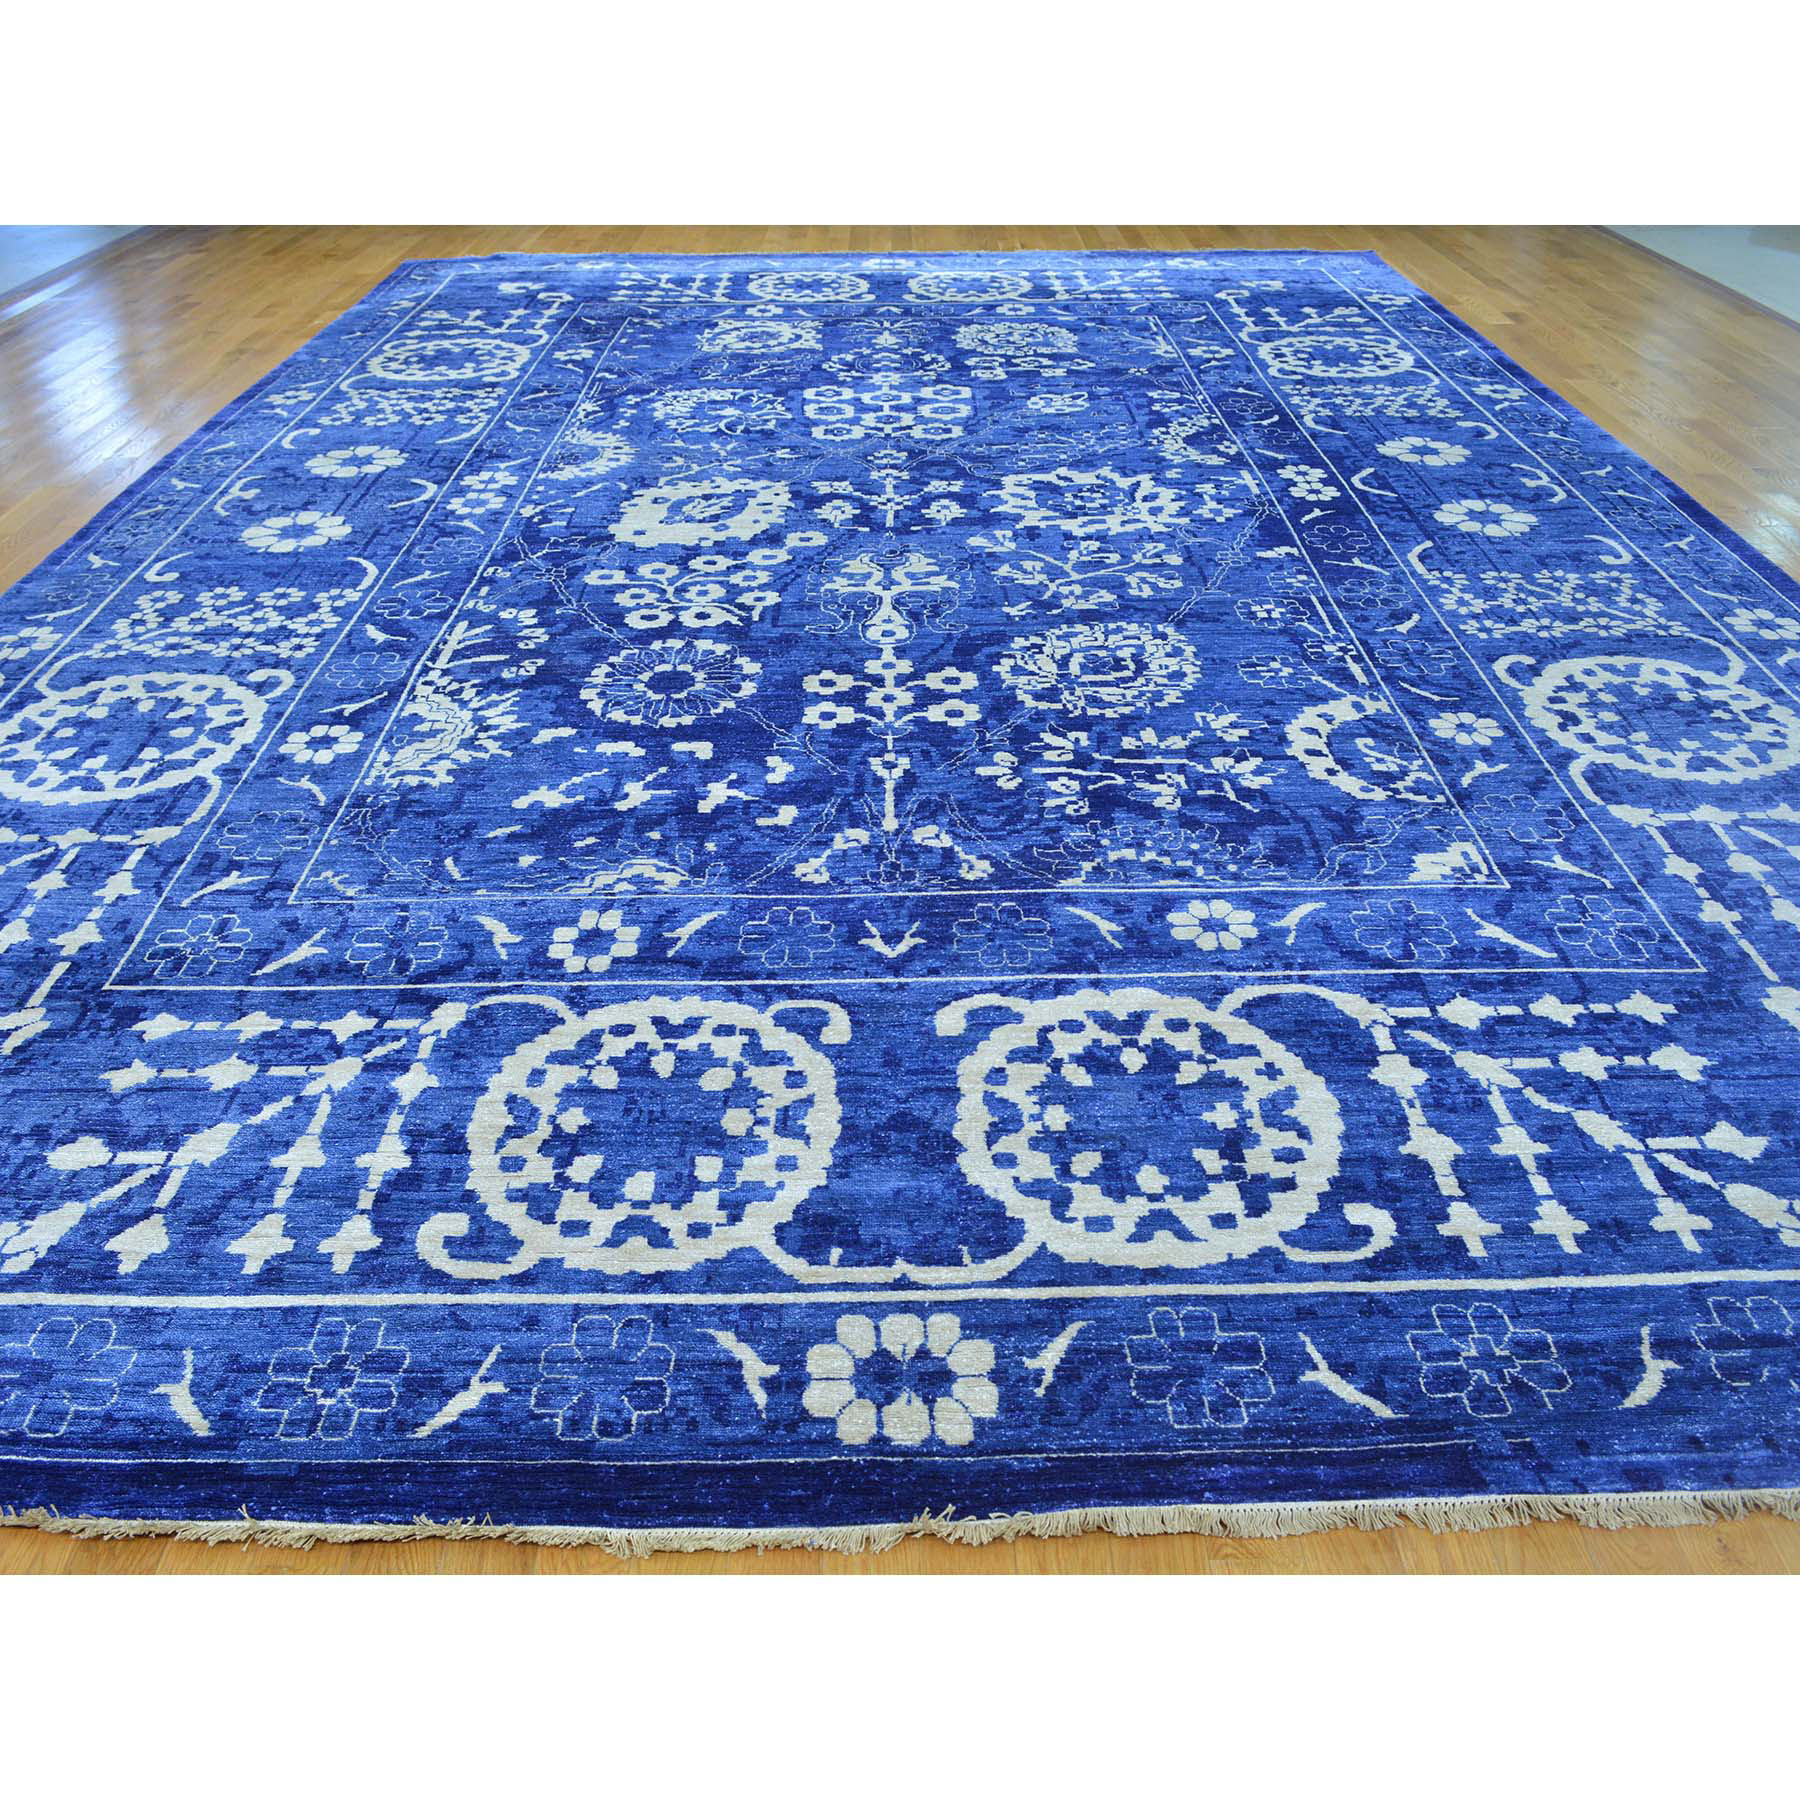 "12'3""x18'4"" Oversize Hand Woven Wool And Silk Tone on Tone Tabriz Rug"